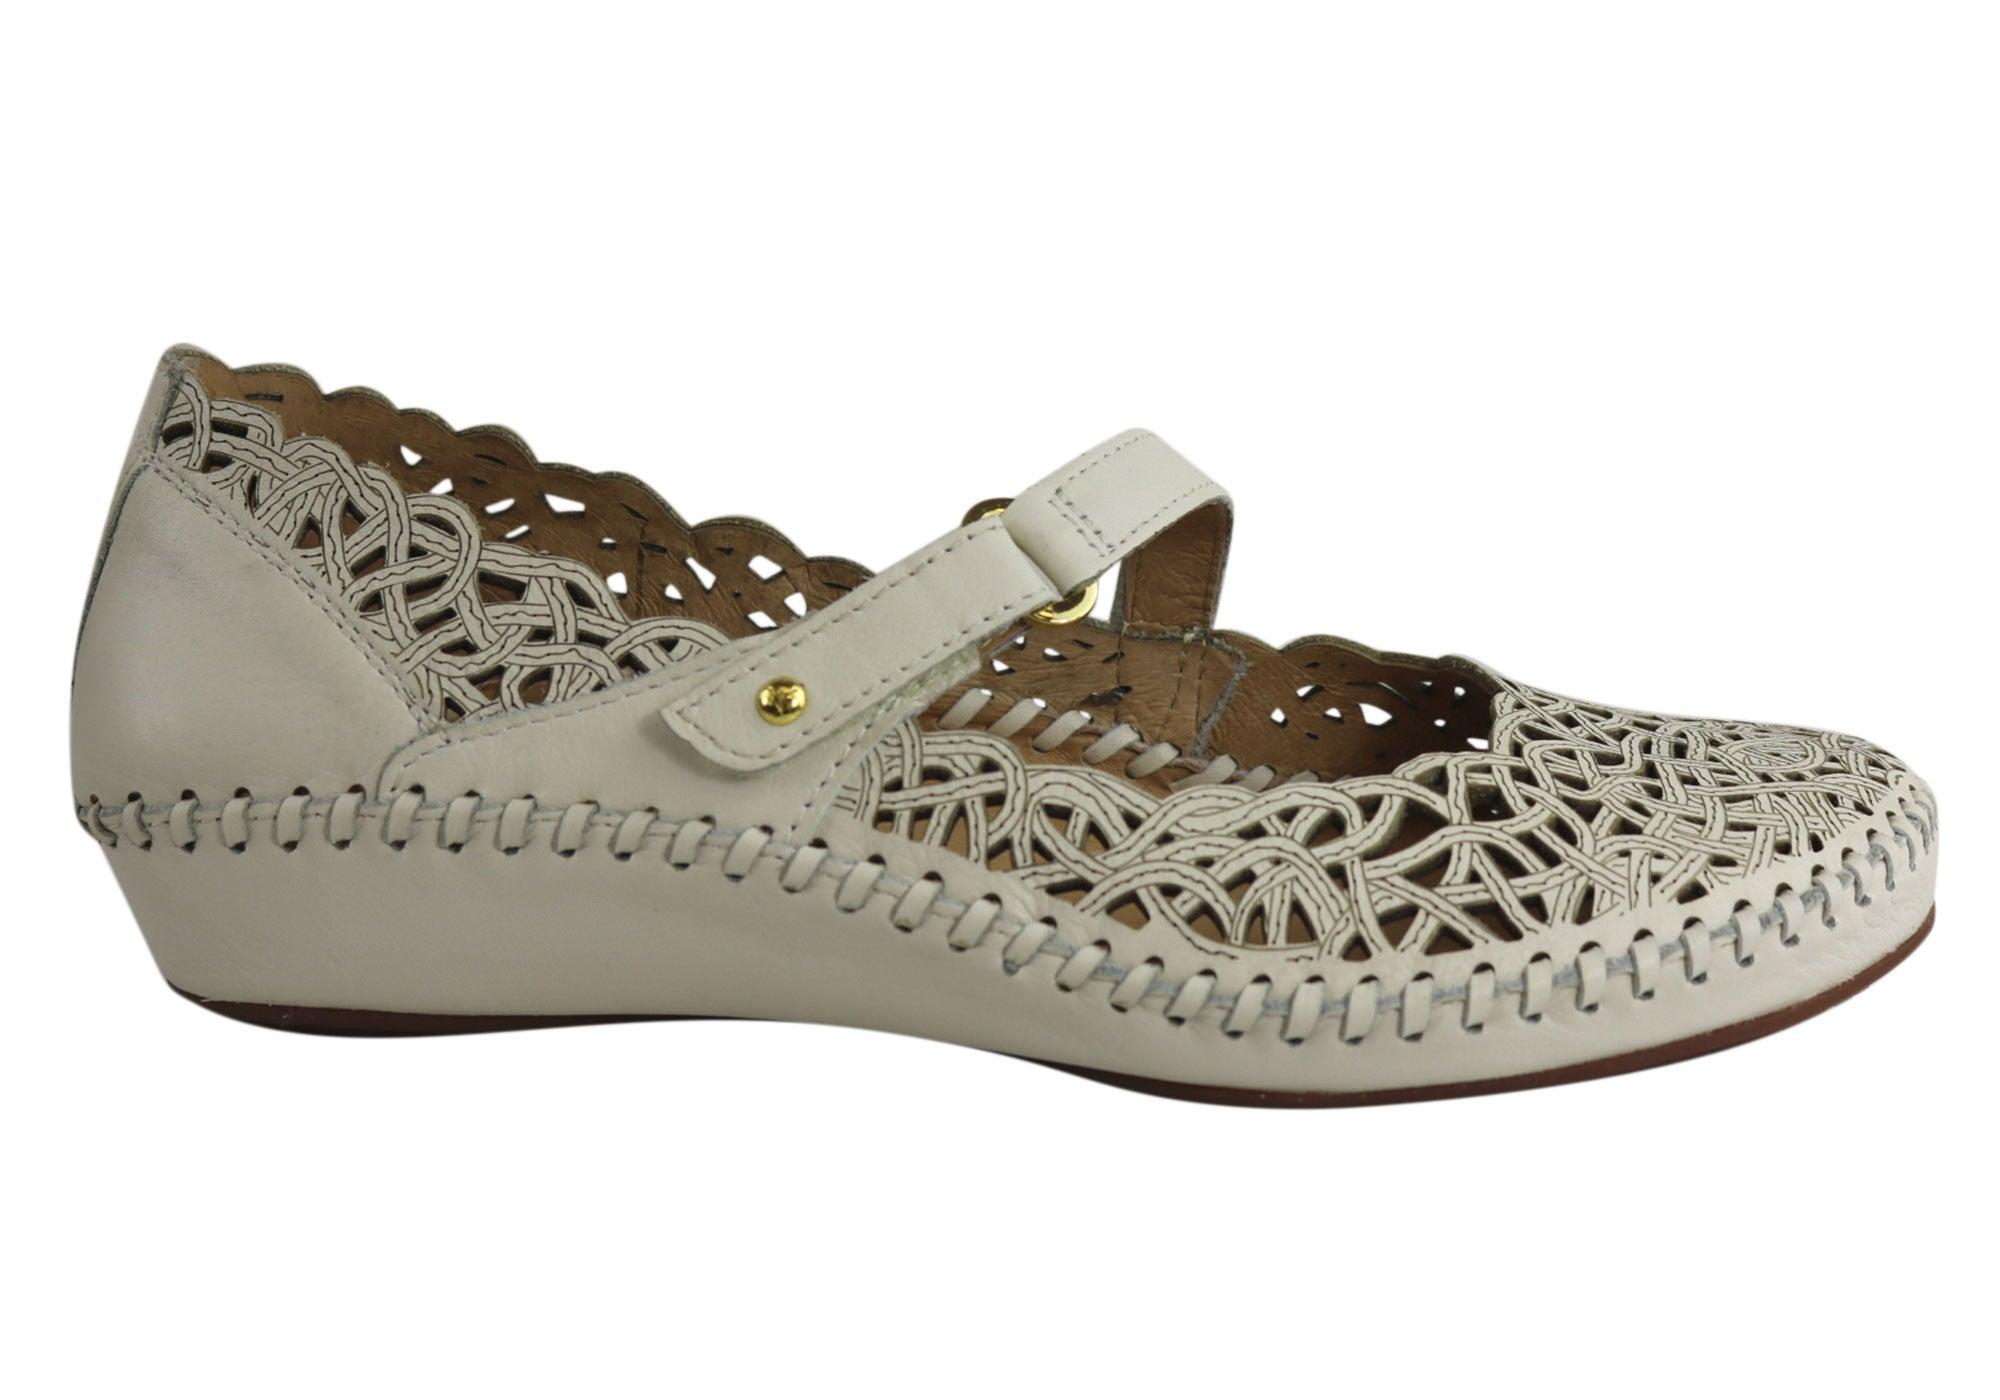 6375ba0437f8b Pikolinos 655-5588 Womens Comfortable Leather Mary Jane Shoes ...